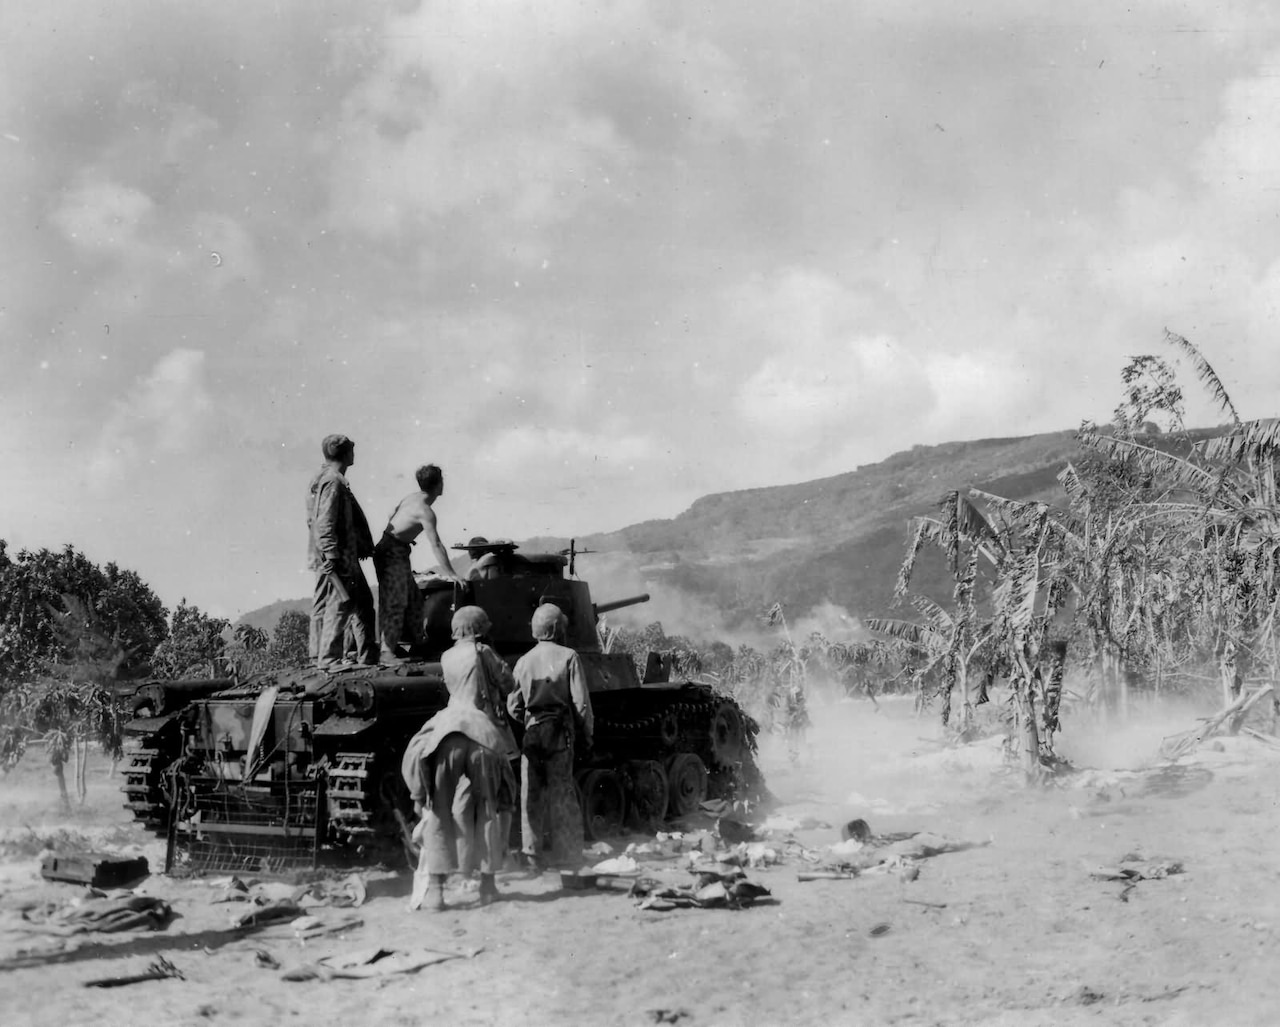 Five men stand on and around a captured Japanese World War II tank near palm trees and a mountain.